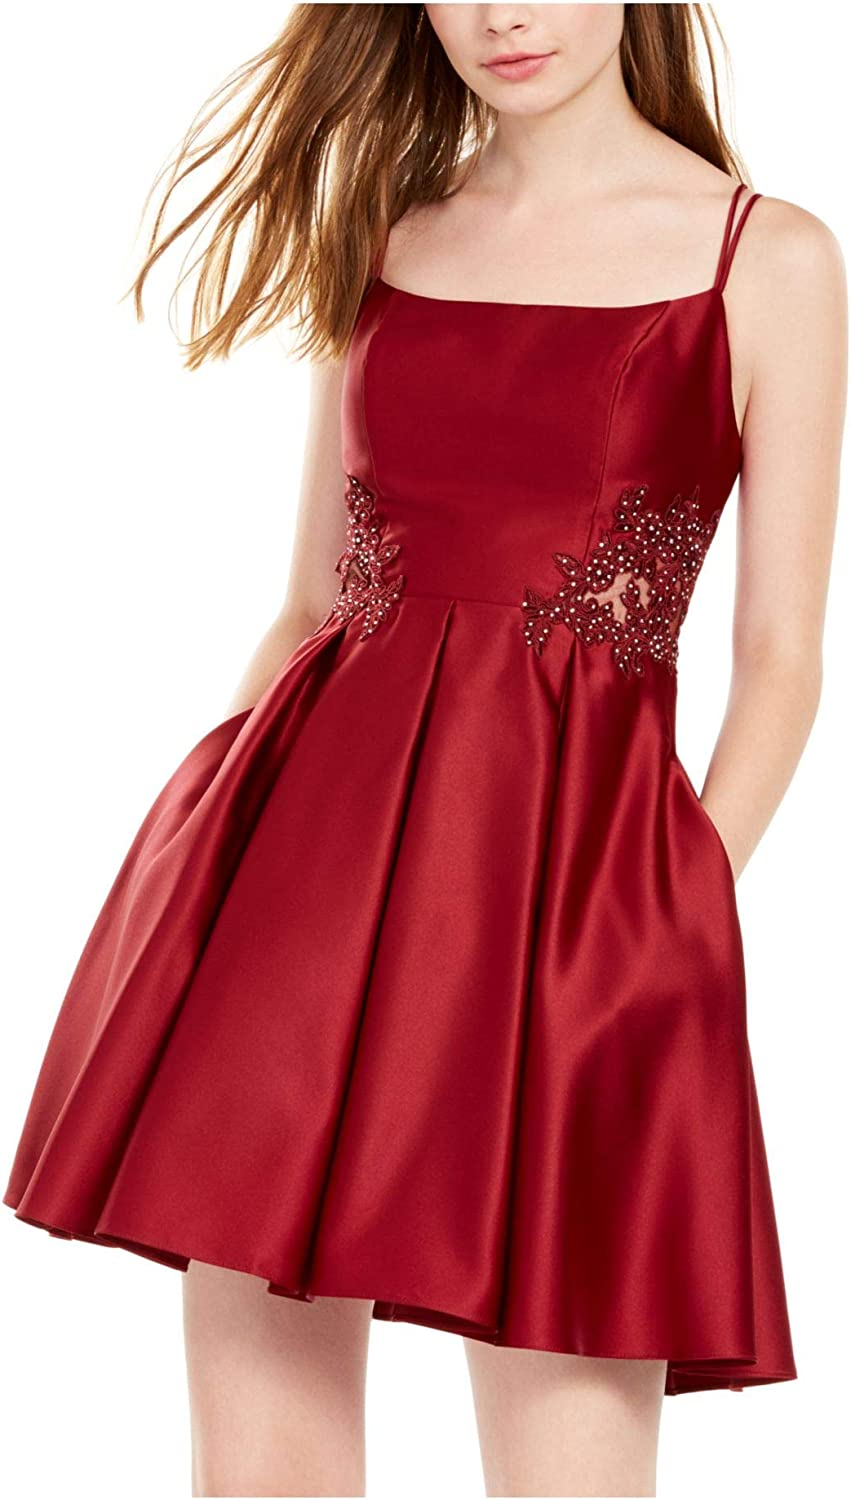 Blondie Womens Burgundy Spaghetti Strap Square Neck Short Fit + Flare Cocktail Dress Size 13